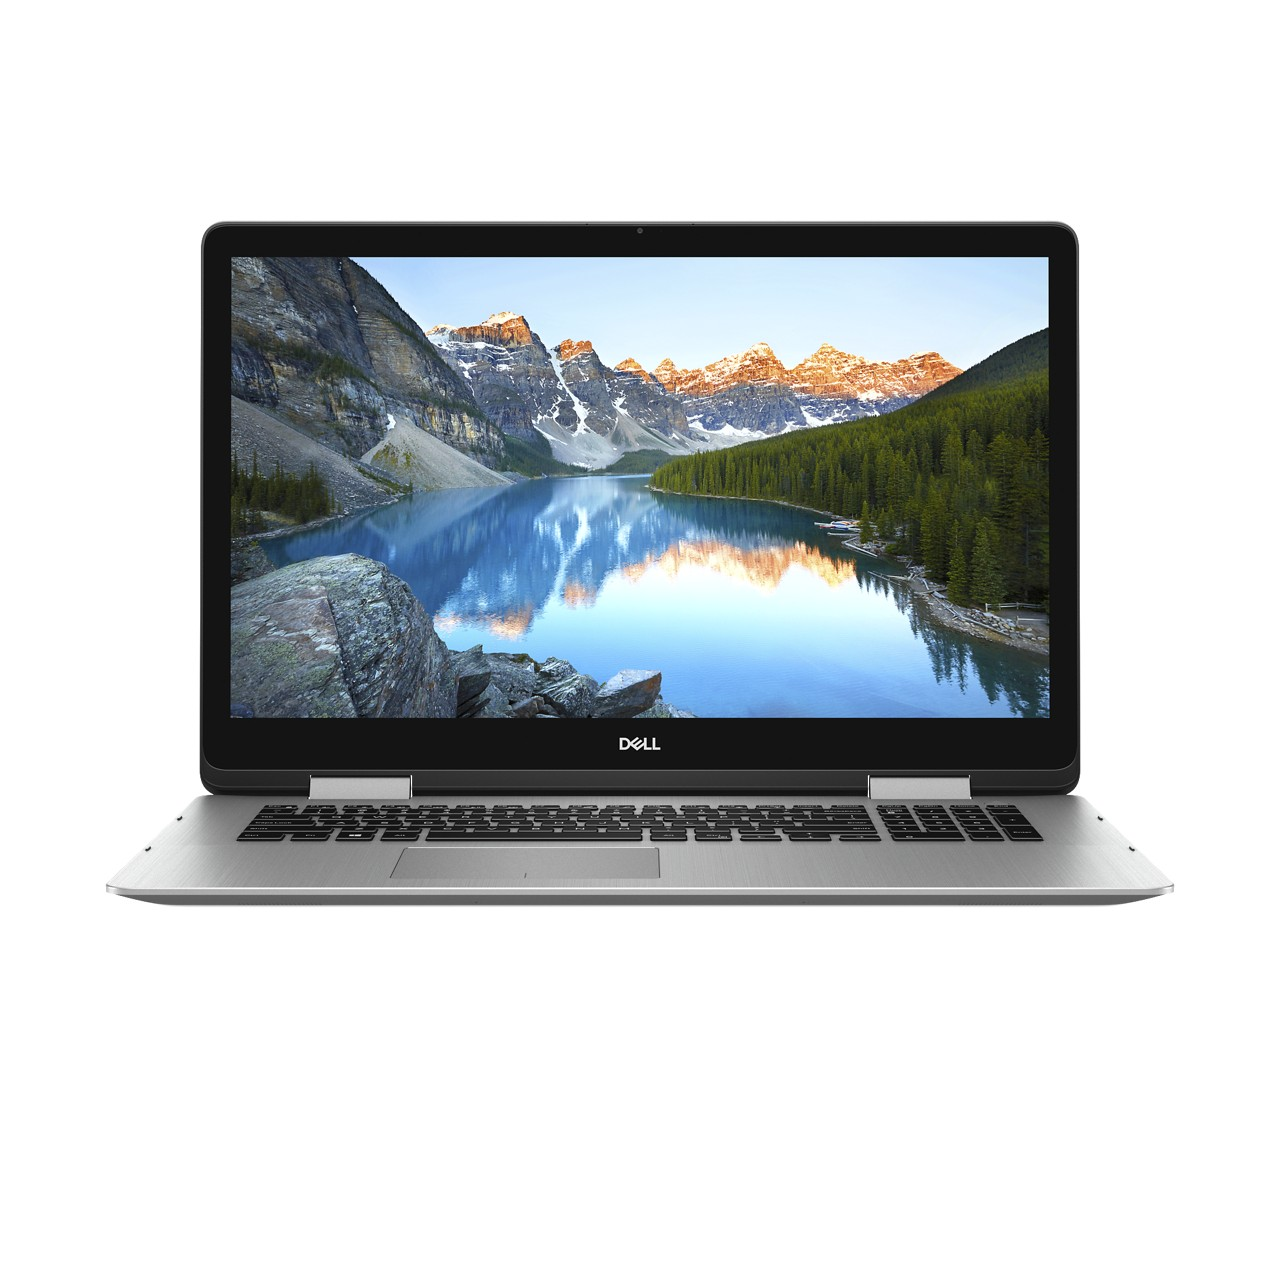 Deals on Dell Inspiron 17 7786 2-in-1 17.3-in Touch Laptop w/Intel Core i7